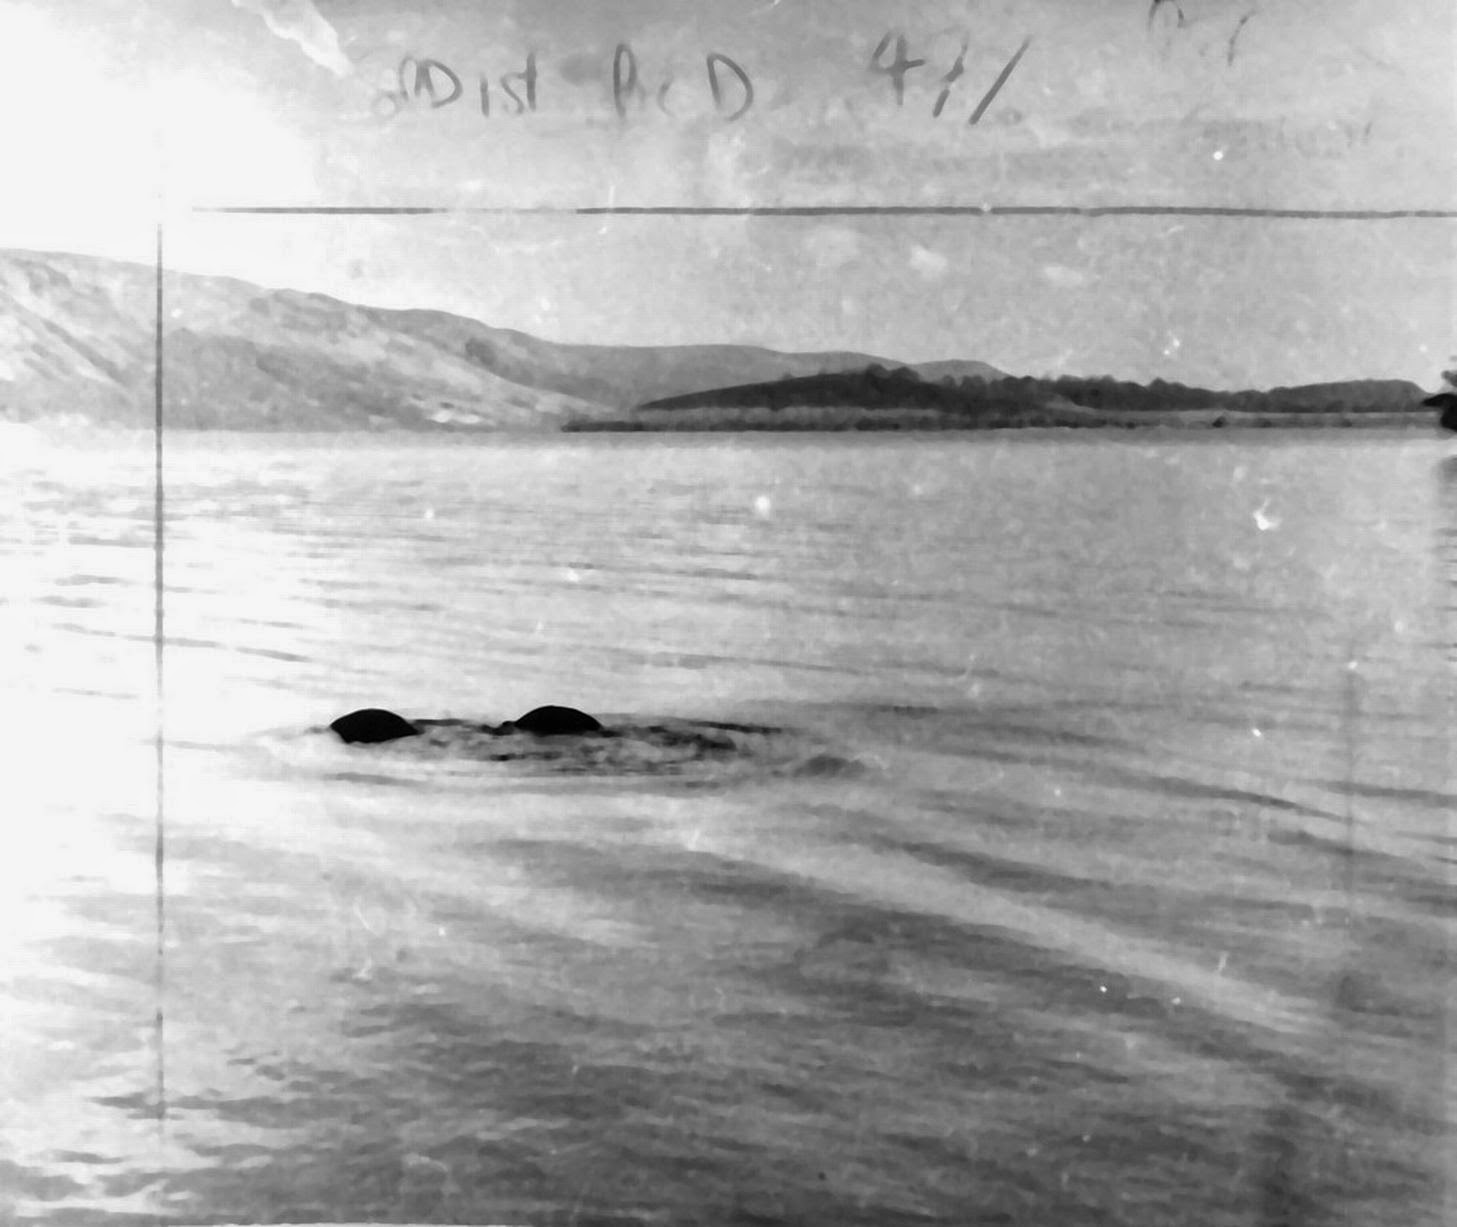 an overview of the mystery and the study of the unknown the loch ness monster The majority of well known cryptozoology is directed towards the search for cryptids such as bigfoot, the yeti, and the loch ness monster, which appear often in popular culture, but for which there is little or no scientific support.